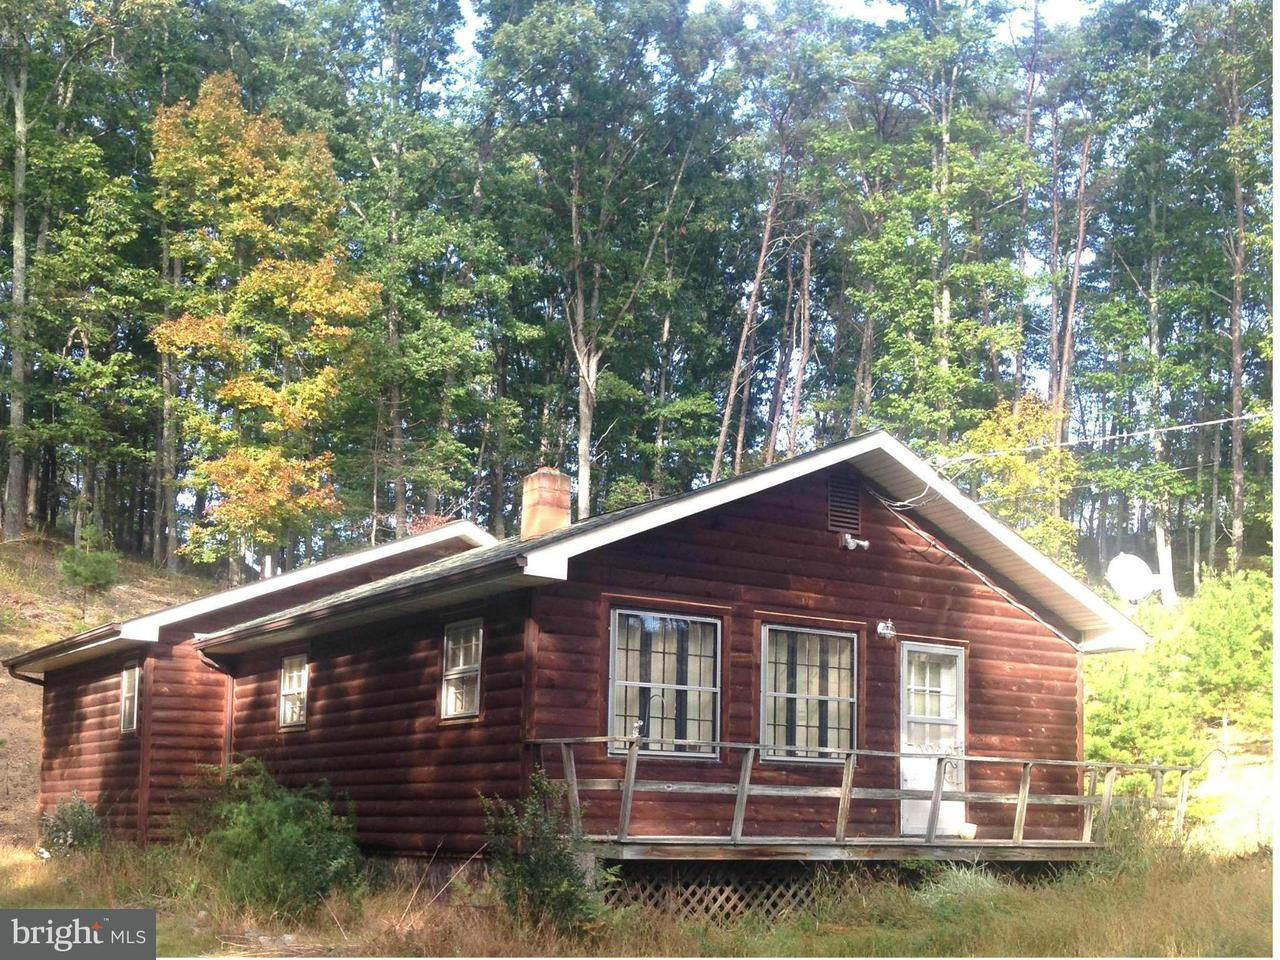 Single Family for Sale at 1160 Rock Oak Rd Rio, West Virginia 26755 United States